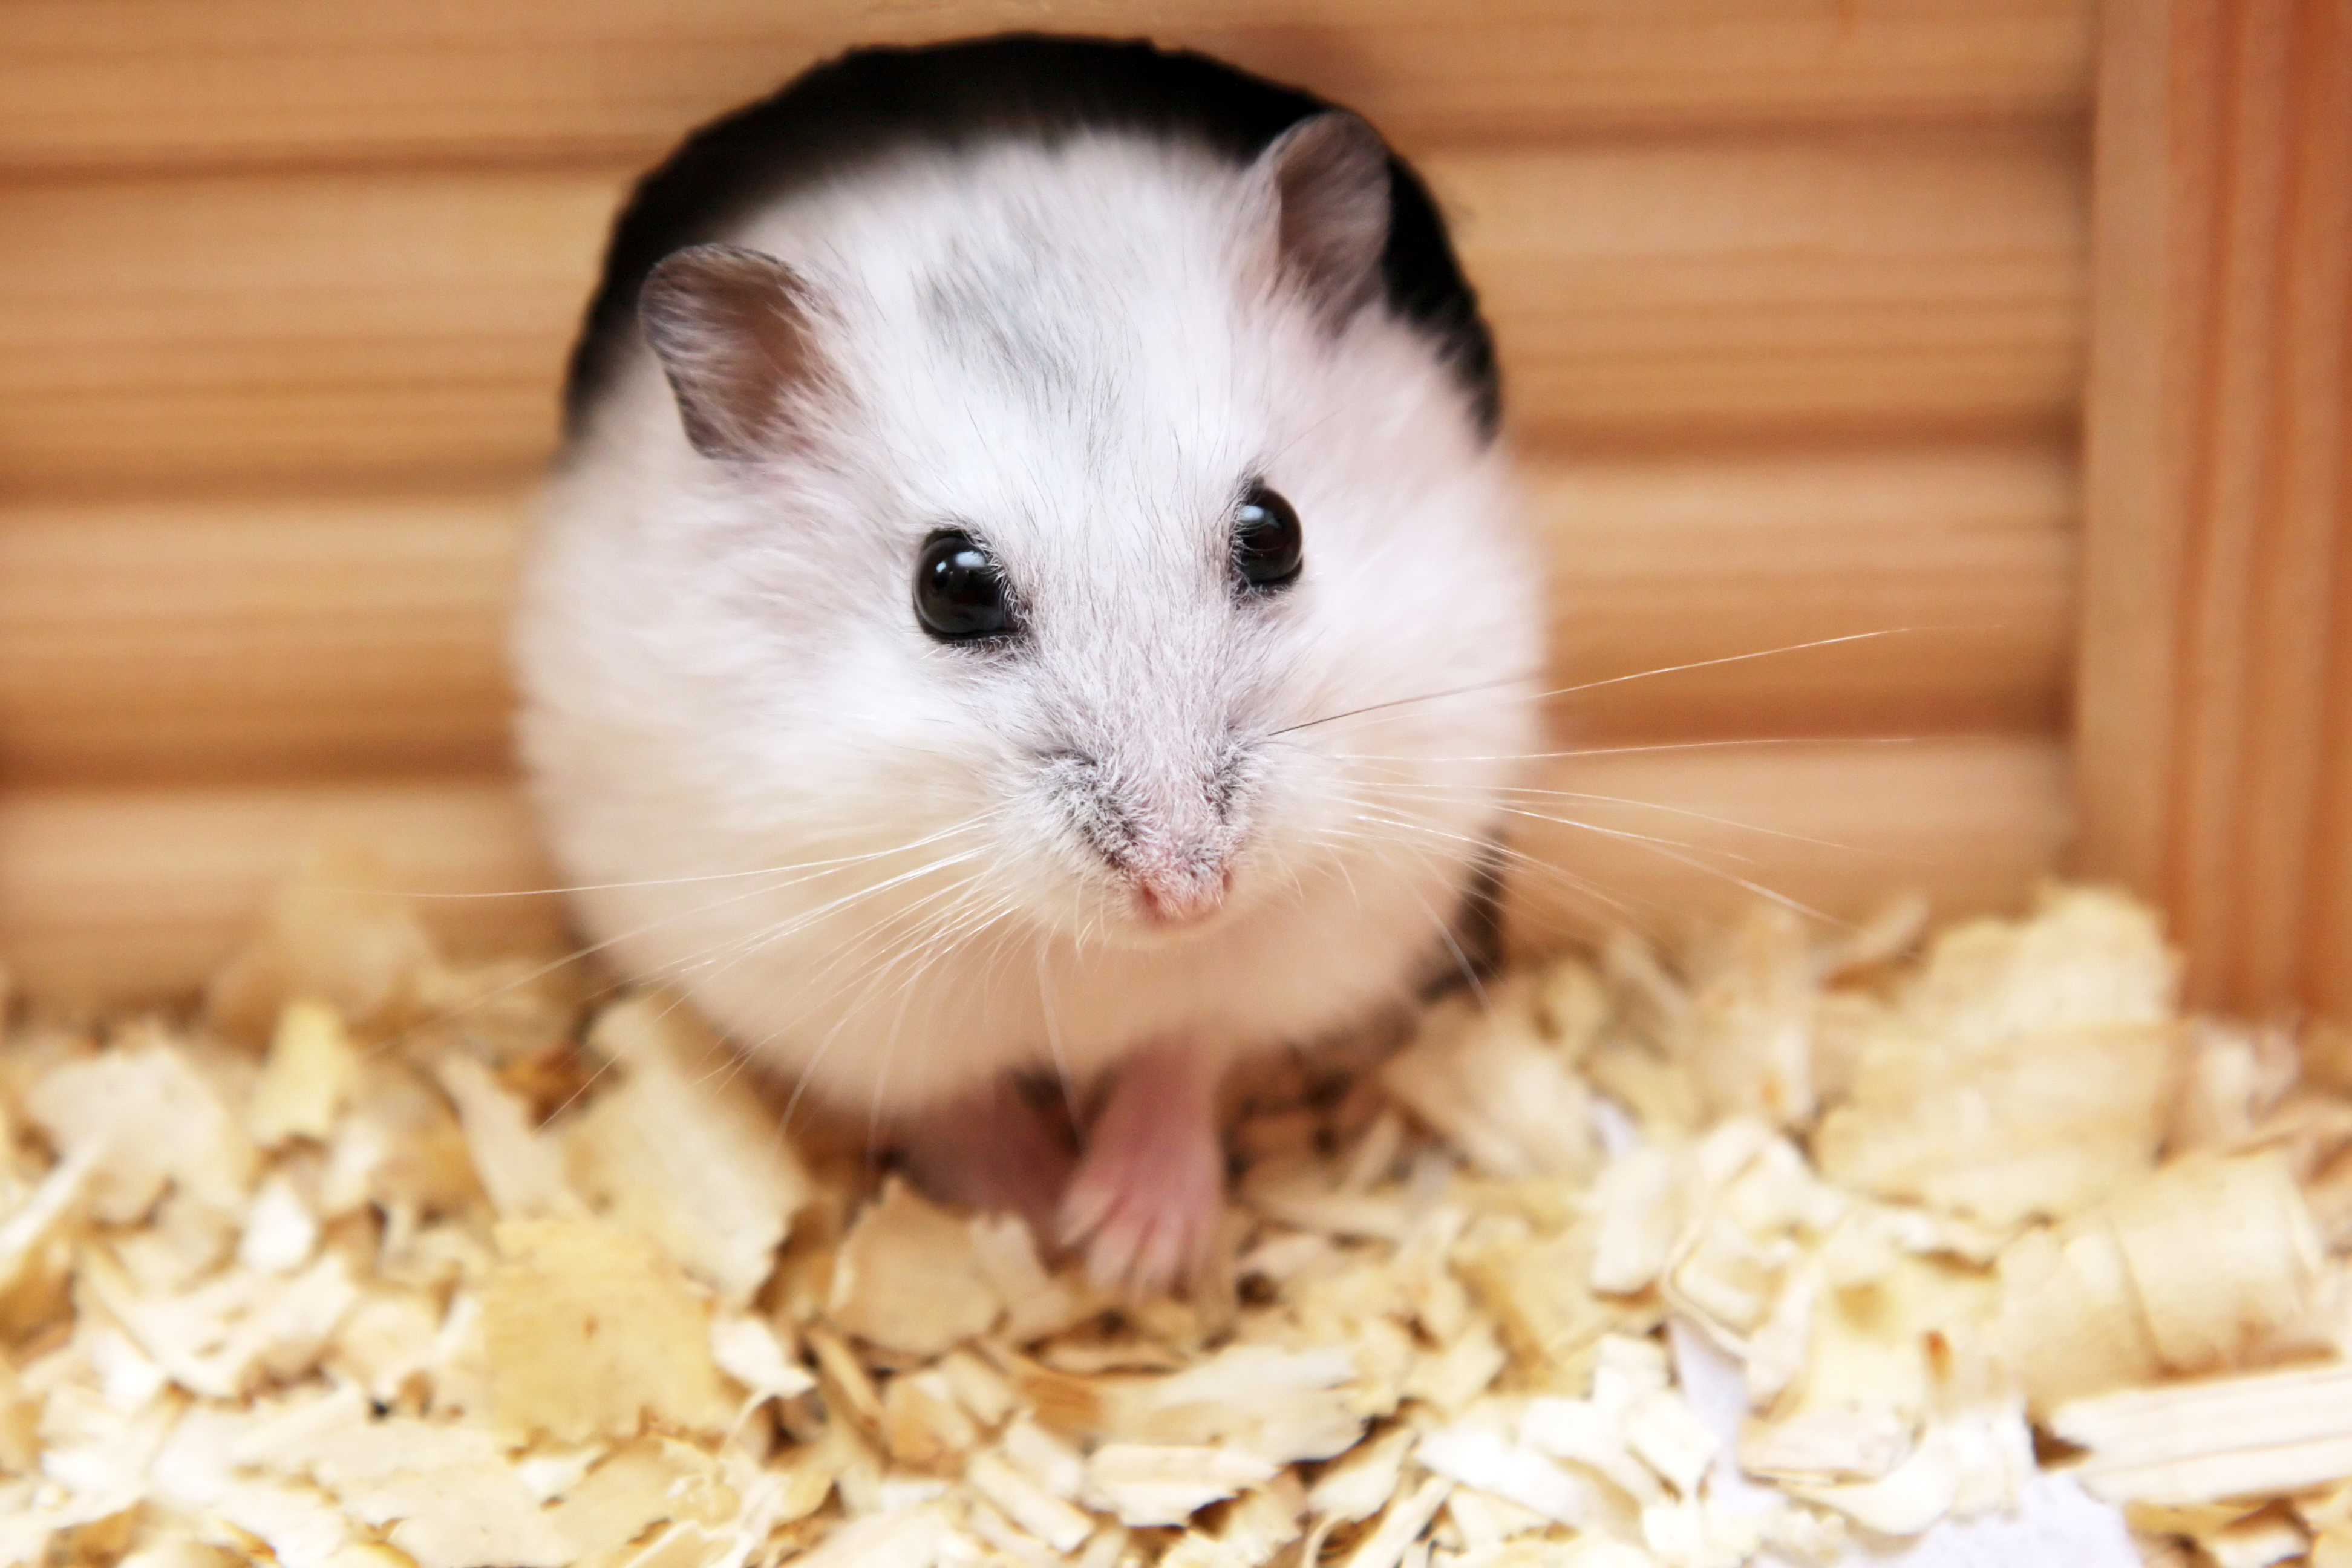 Facts About Small Mammals as Pets | Petfinder